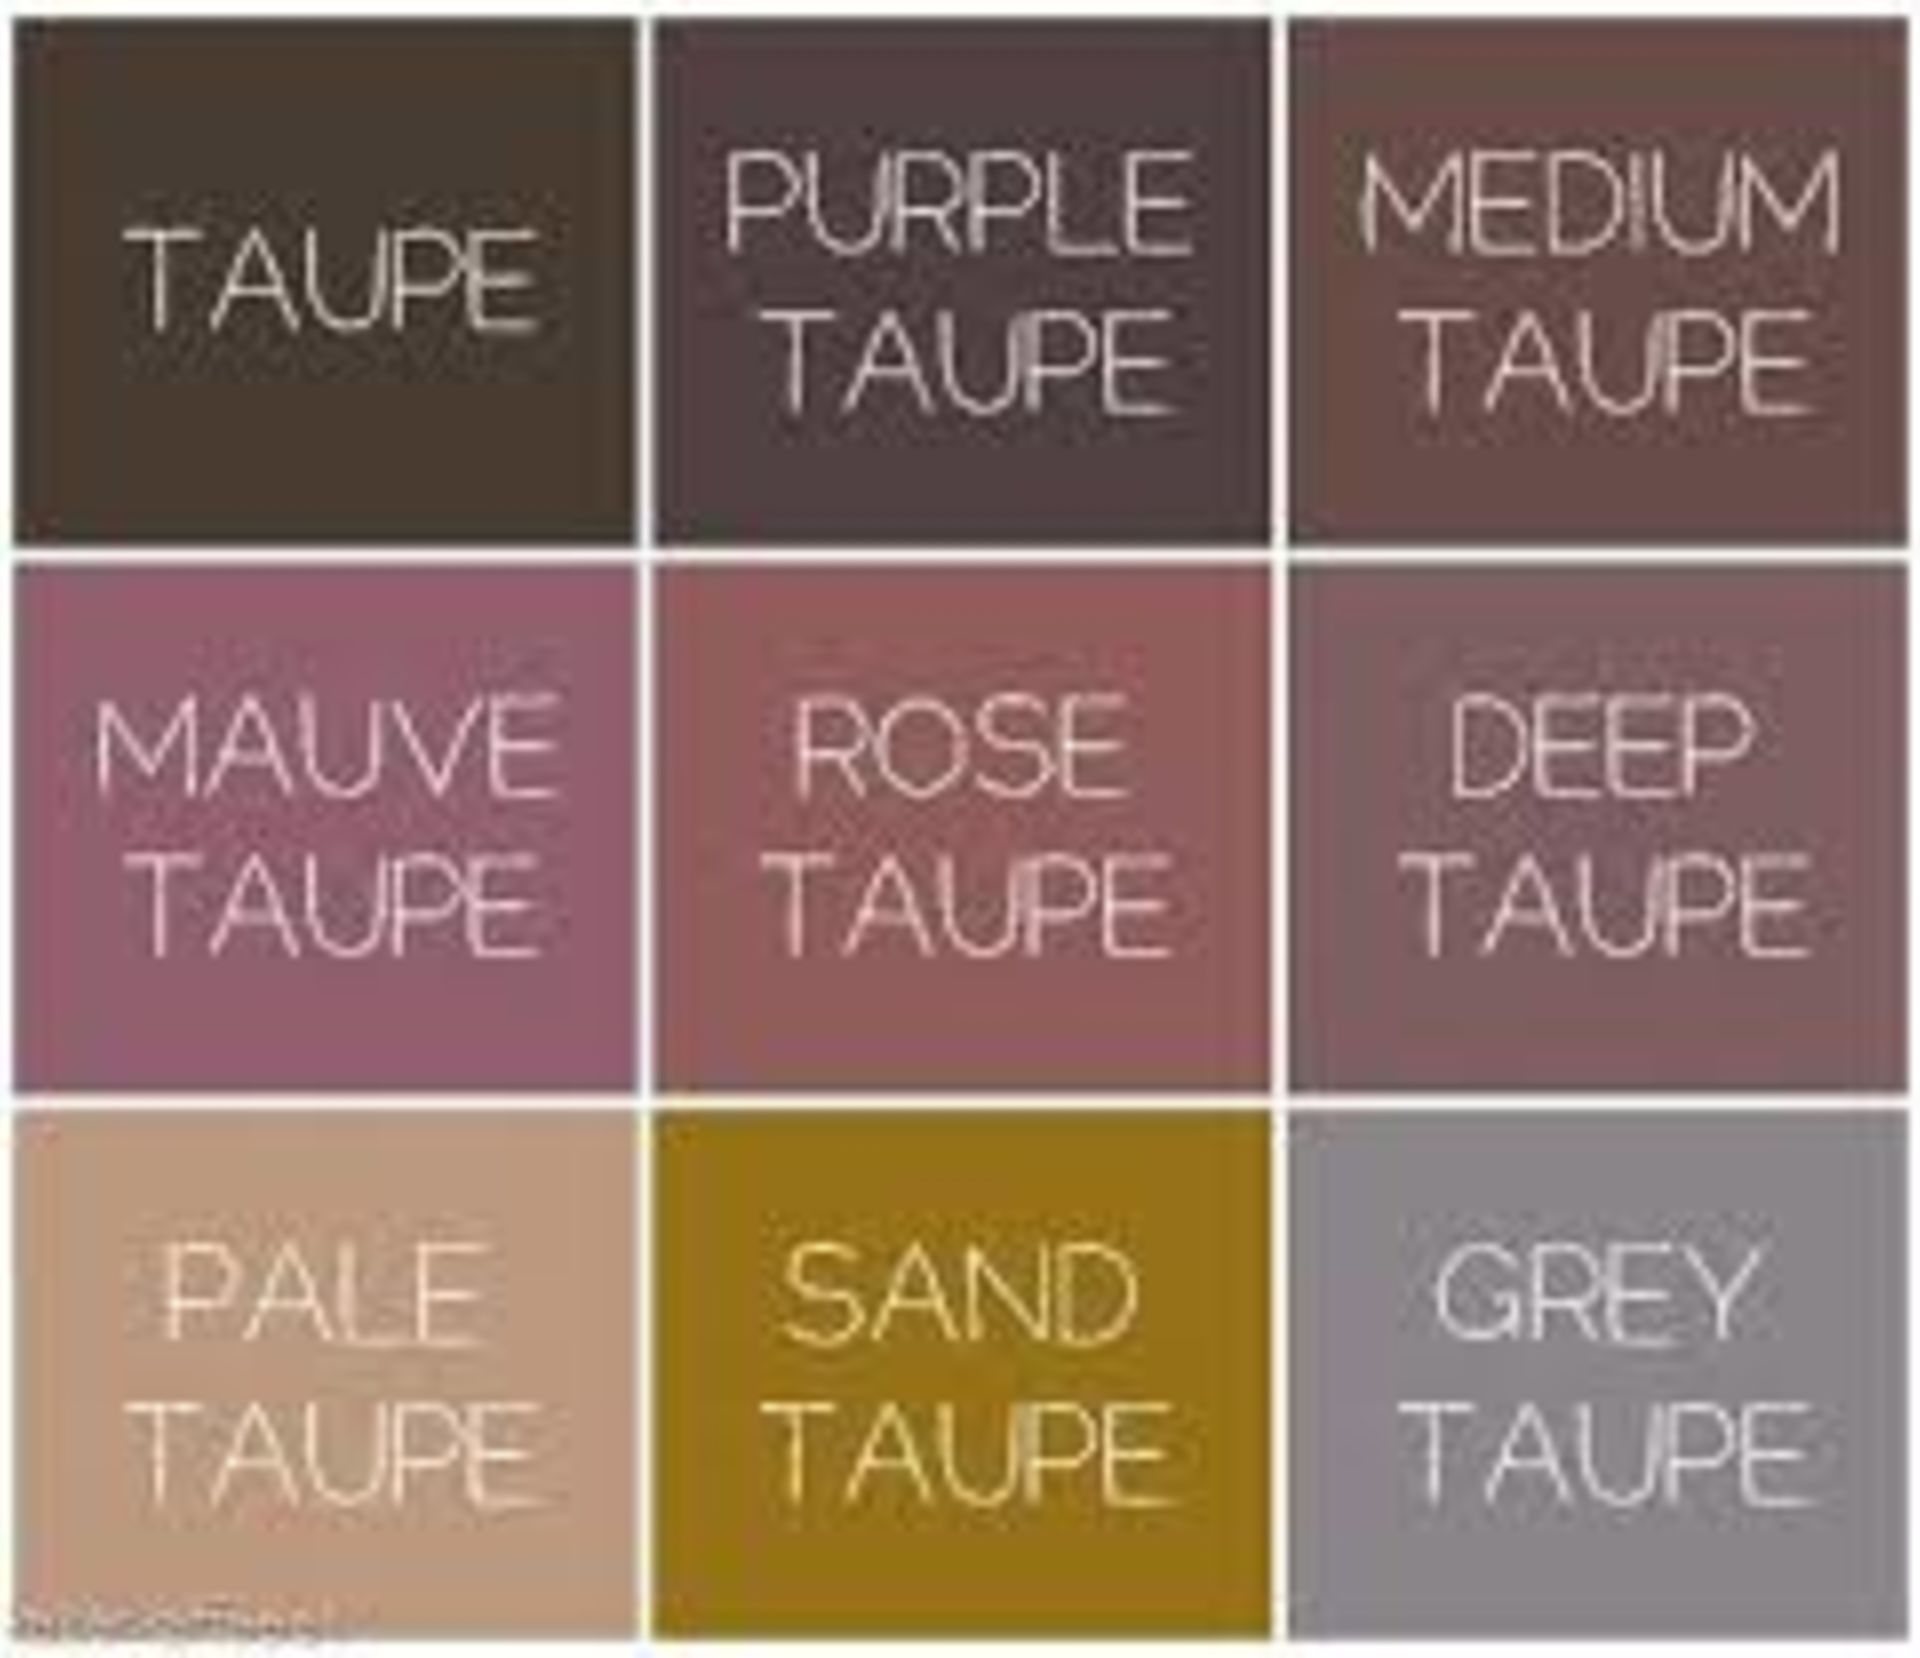 Taupe is the new grey